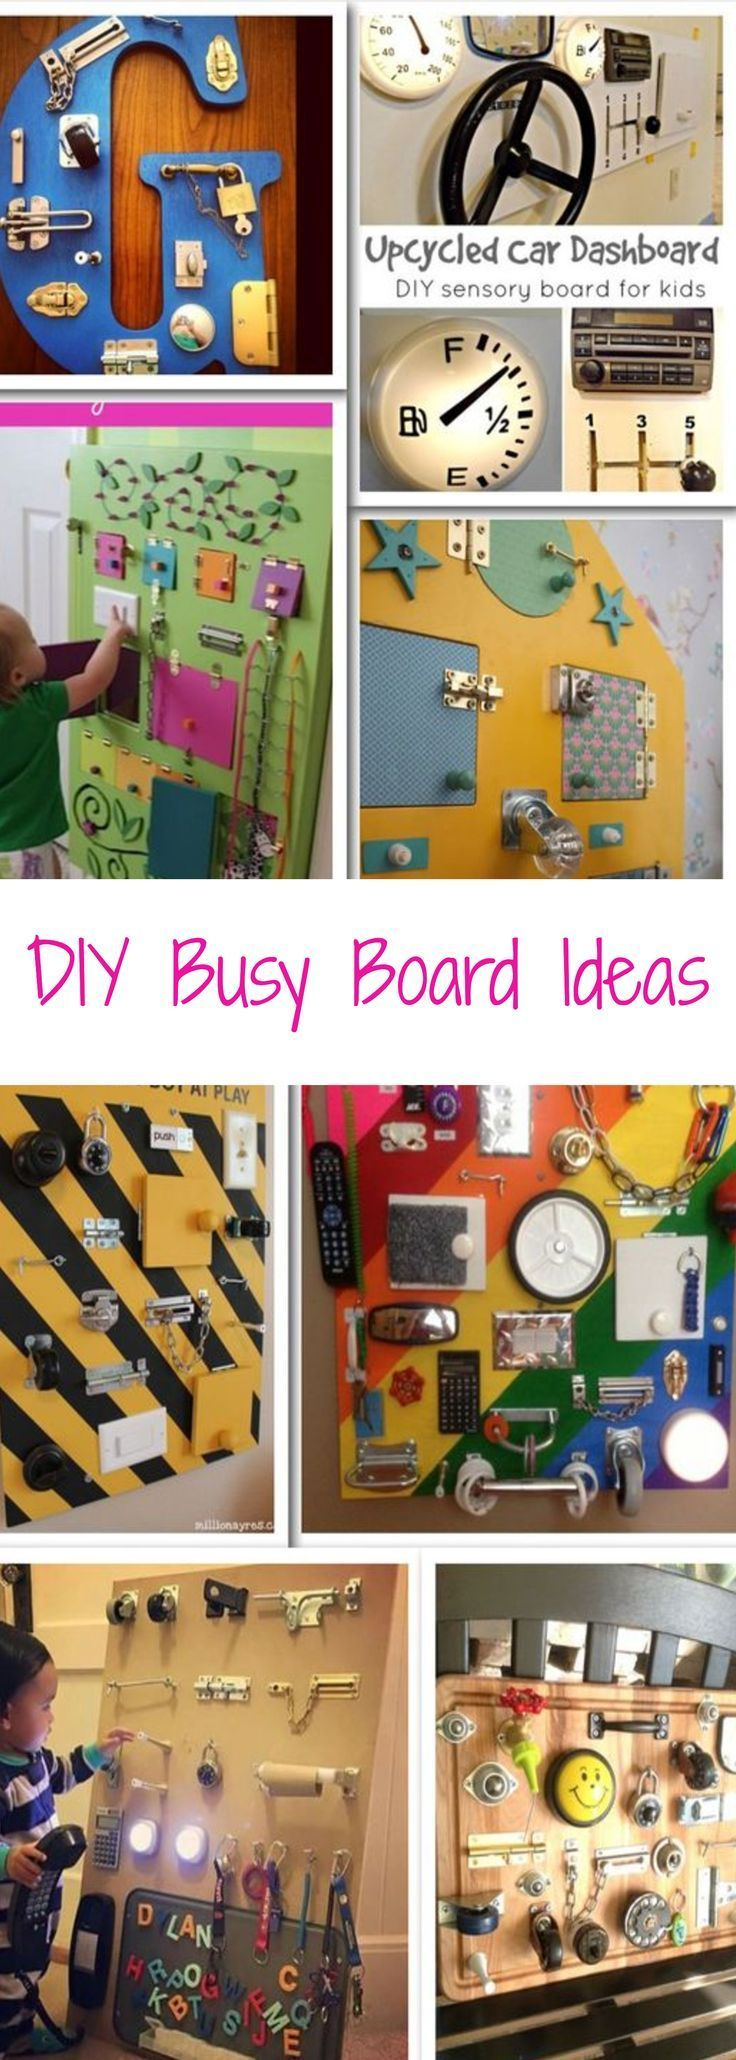 NEW: Sensory Board PICTURES! 16+ DIY Toddler Busy Boards for 2019